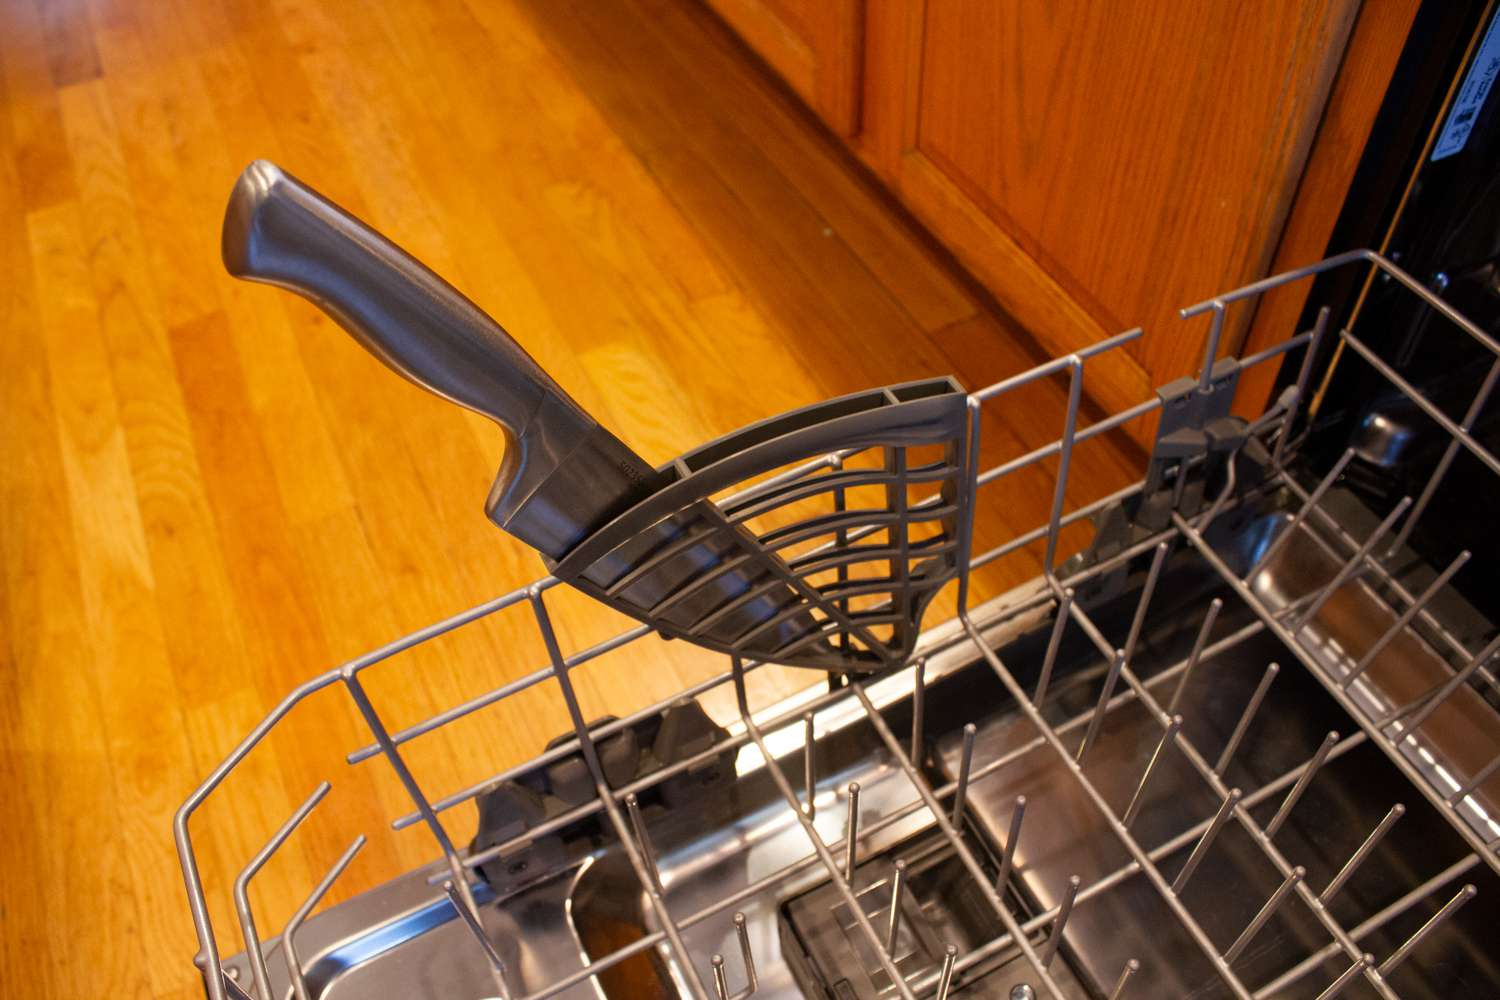 Kitchenaid 43 Dba Dishwasher Review Cleans Effortlessly,Keeping Up With The Joneses Examples